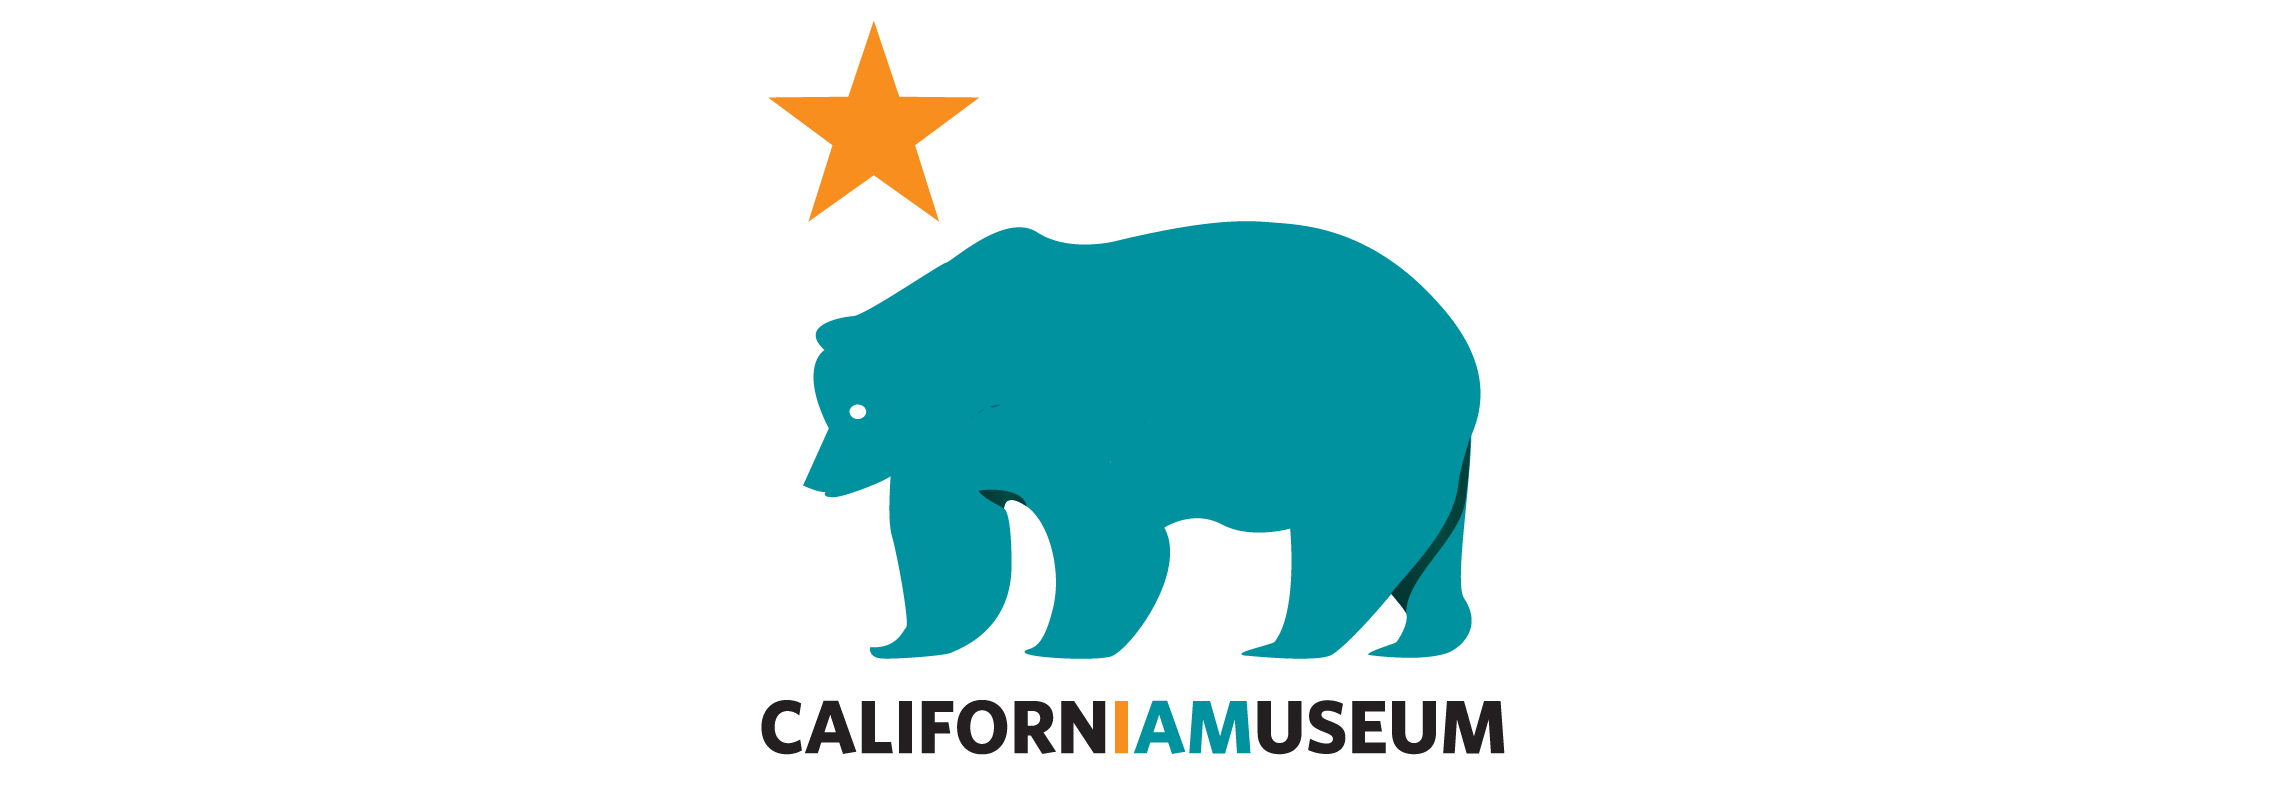 California Museum Logo